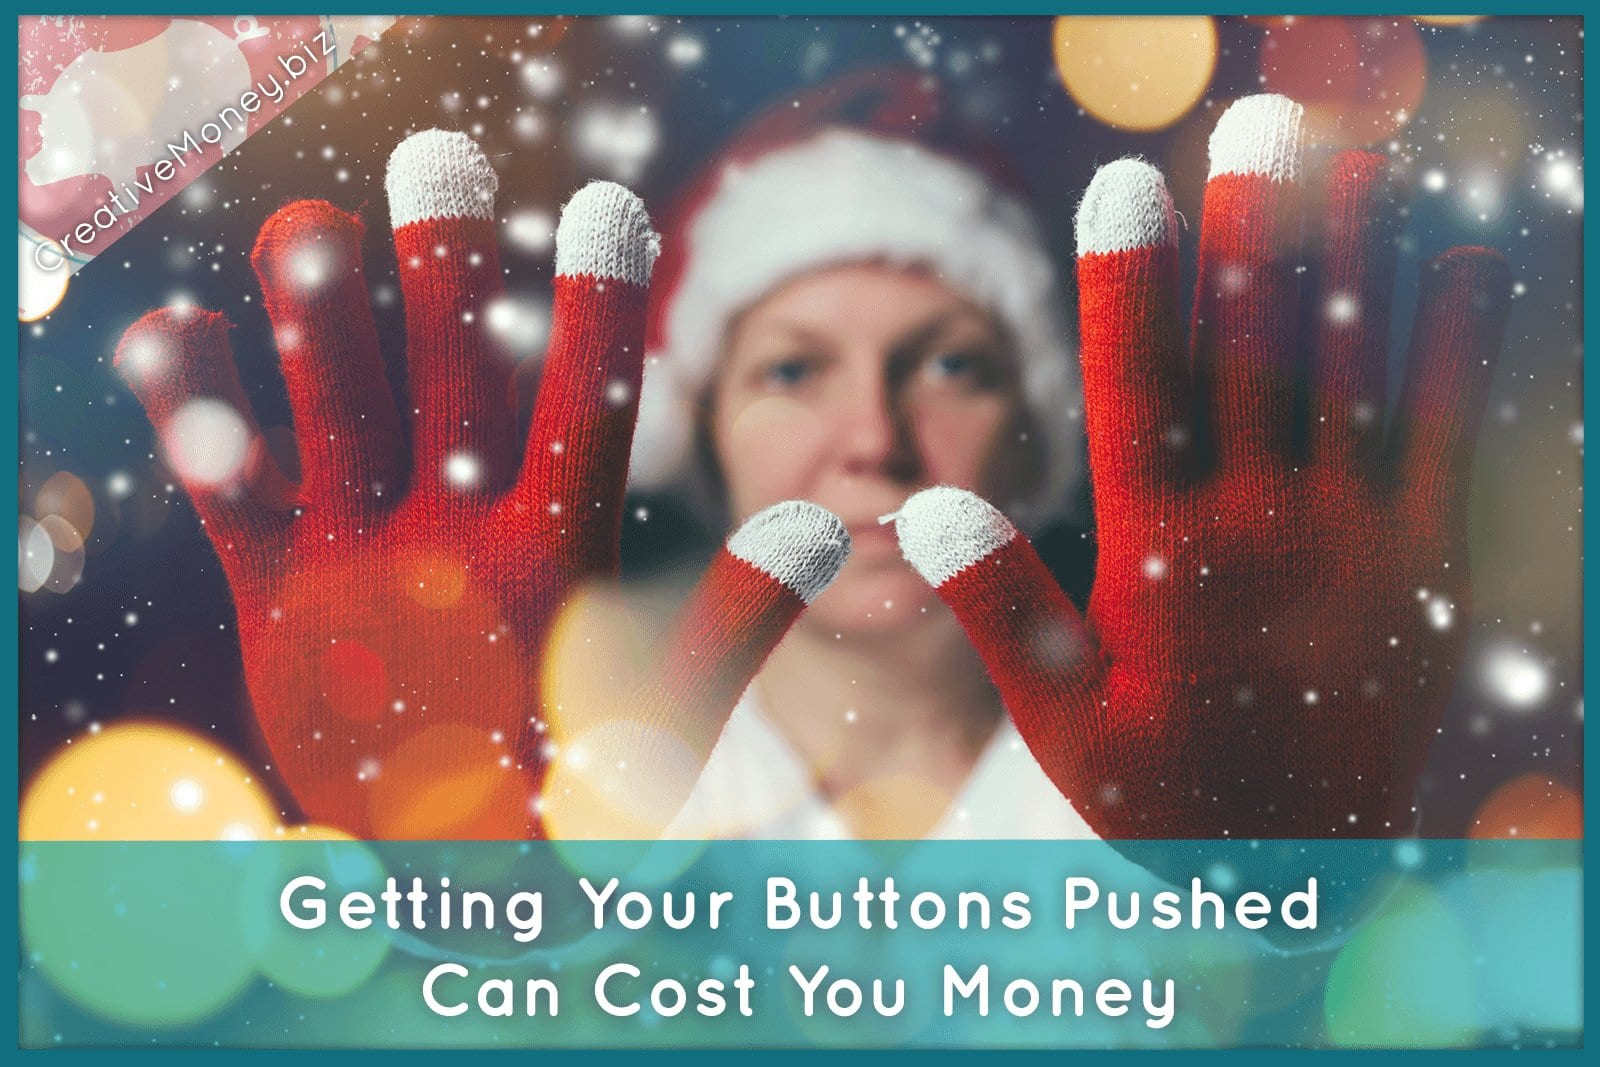 Getting Your Buttons Pushed Can Cost You Money